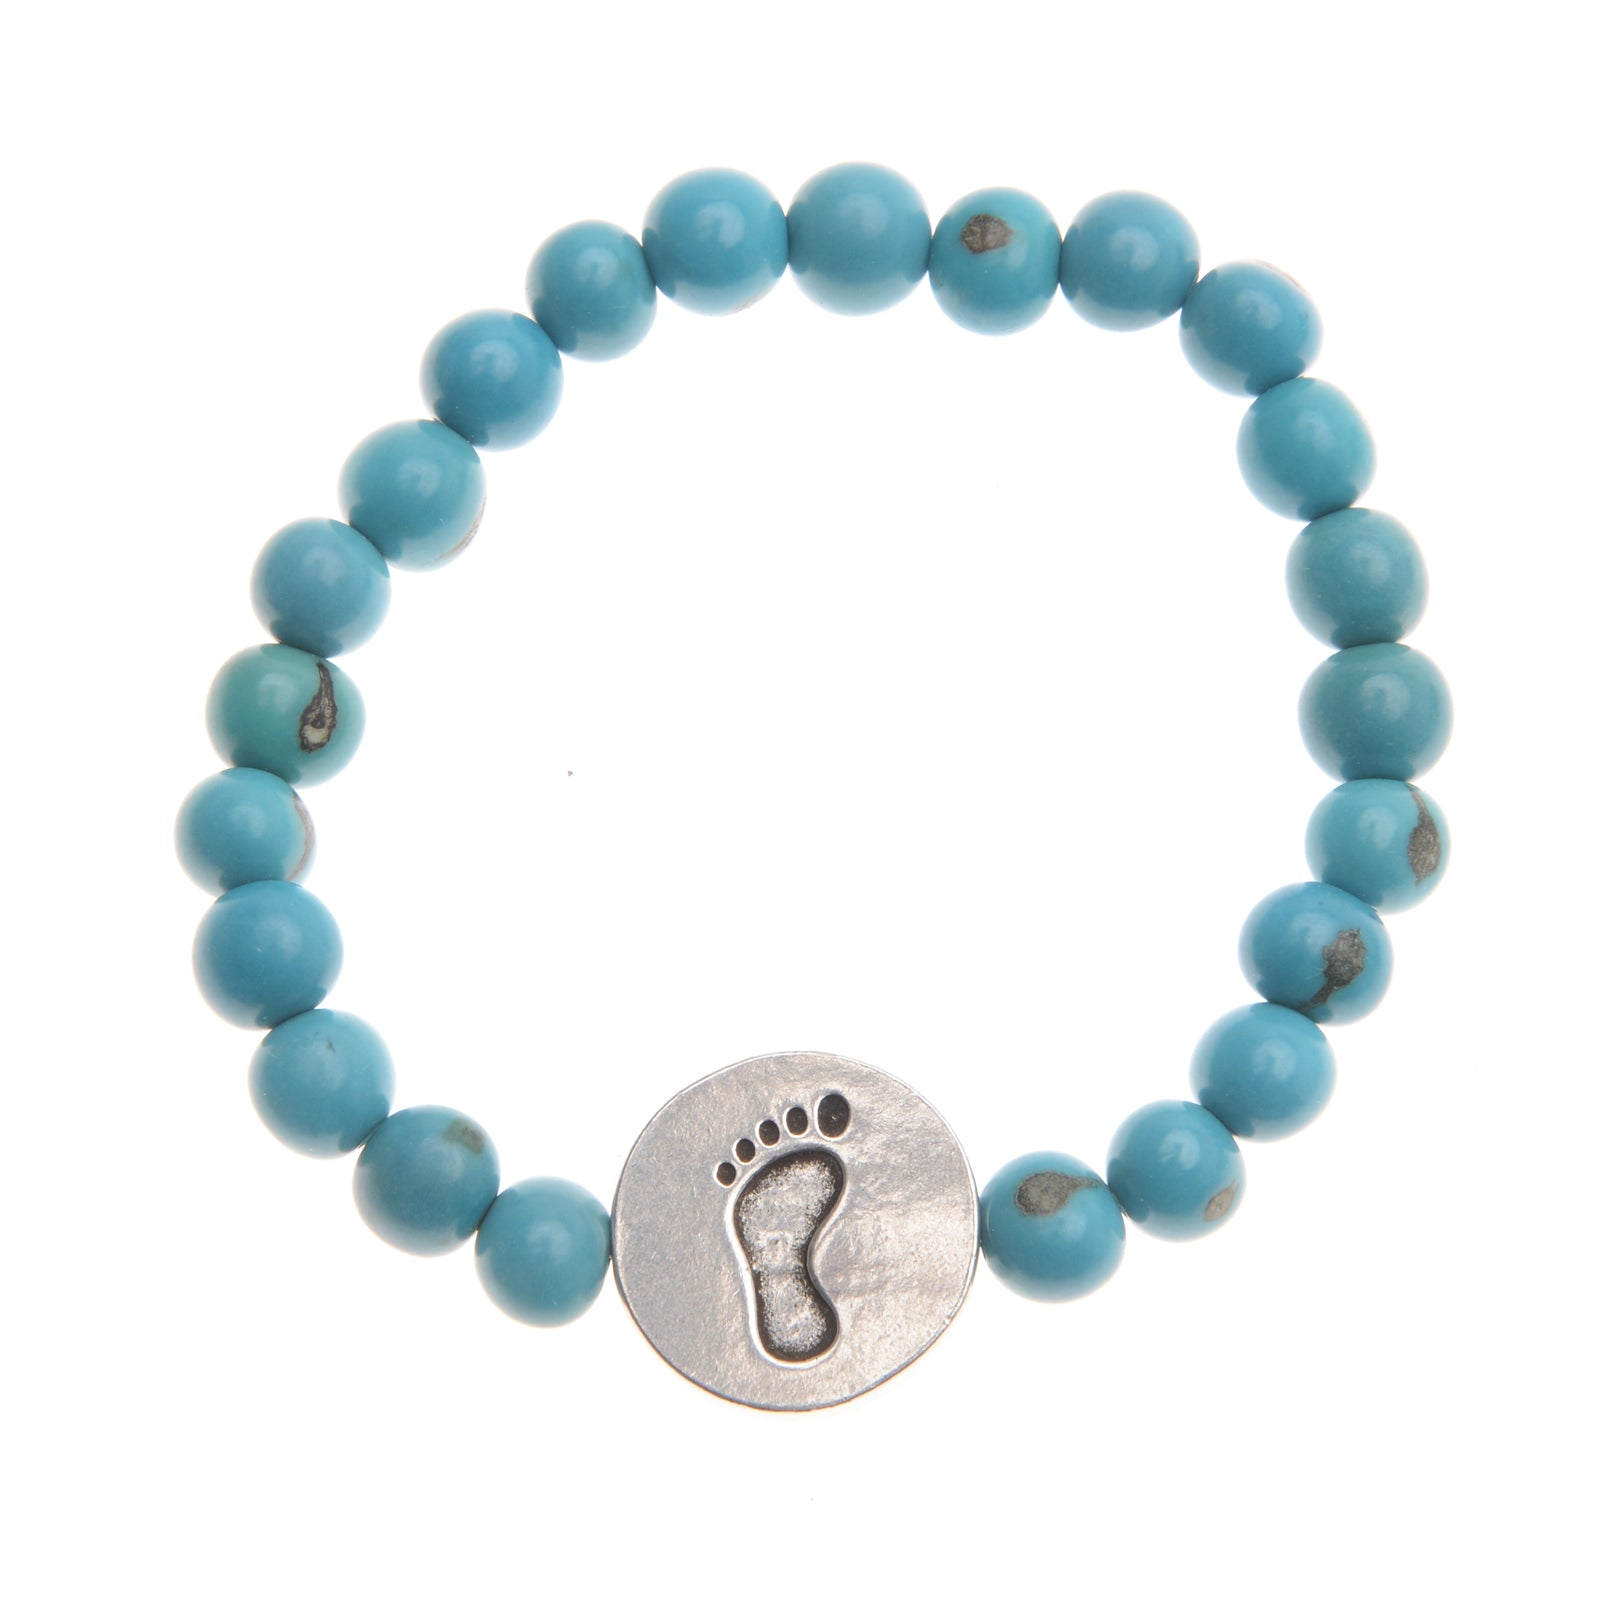 Walking Strong Bracelet - Turquoise ACAI Seeds of Life Bracelets - Whitney Howard Designs